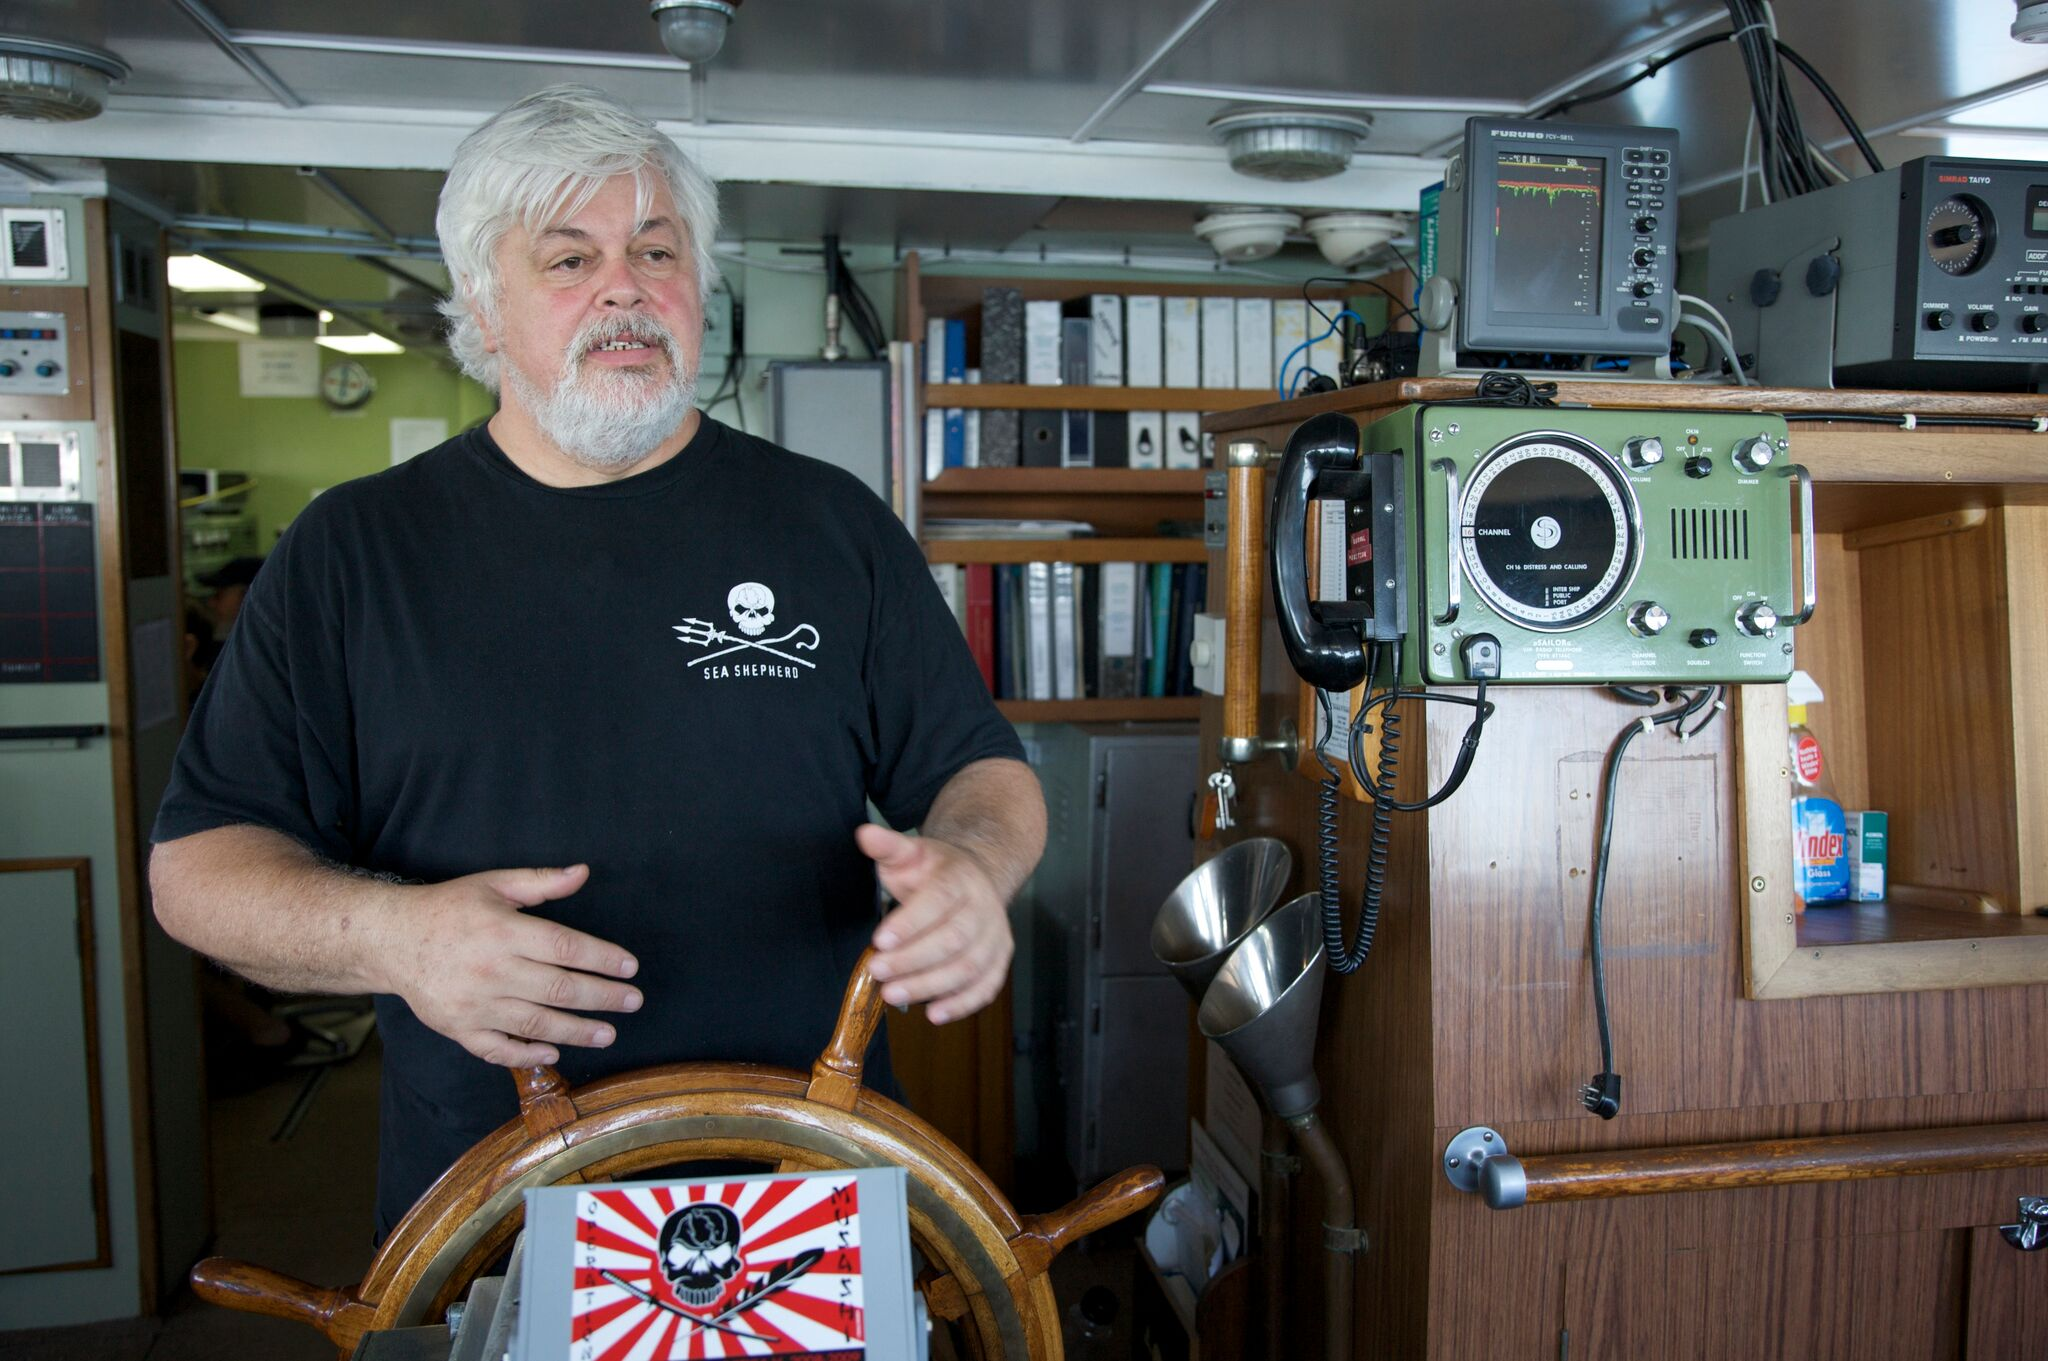 Captain Paul Watson of Whale Wars and Sea Shepherd in San Diego Saturday